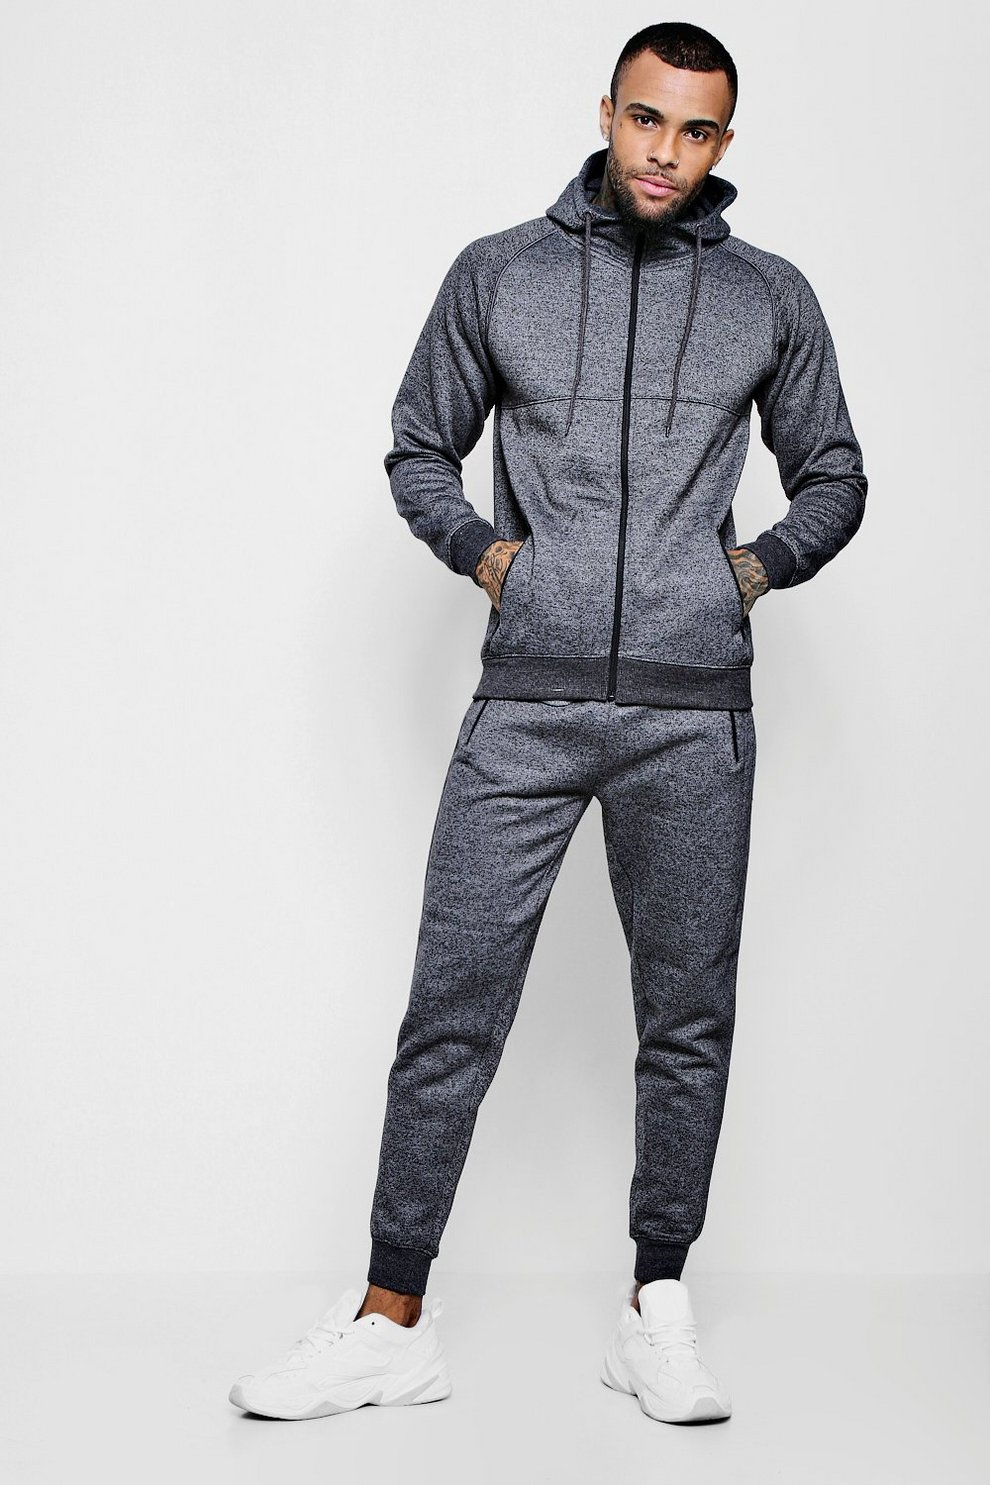 360015e855c2 Mens Charcoal Fleece Zip Hooded Tracksuit With Piping